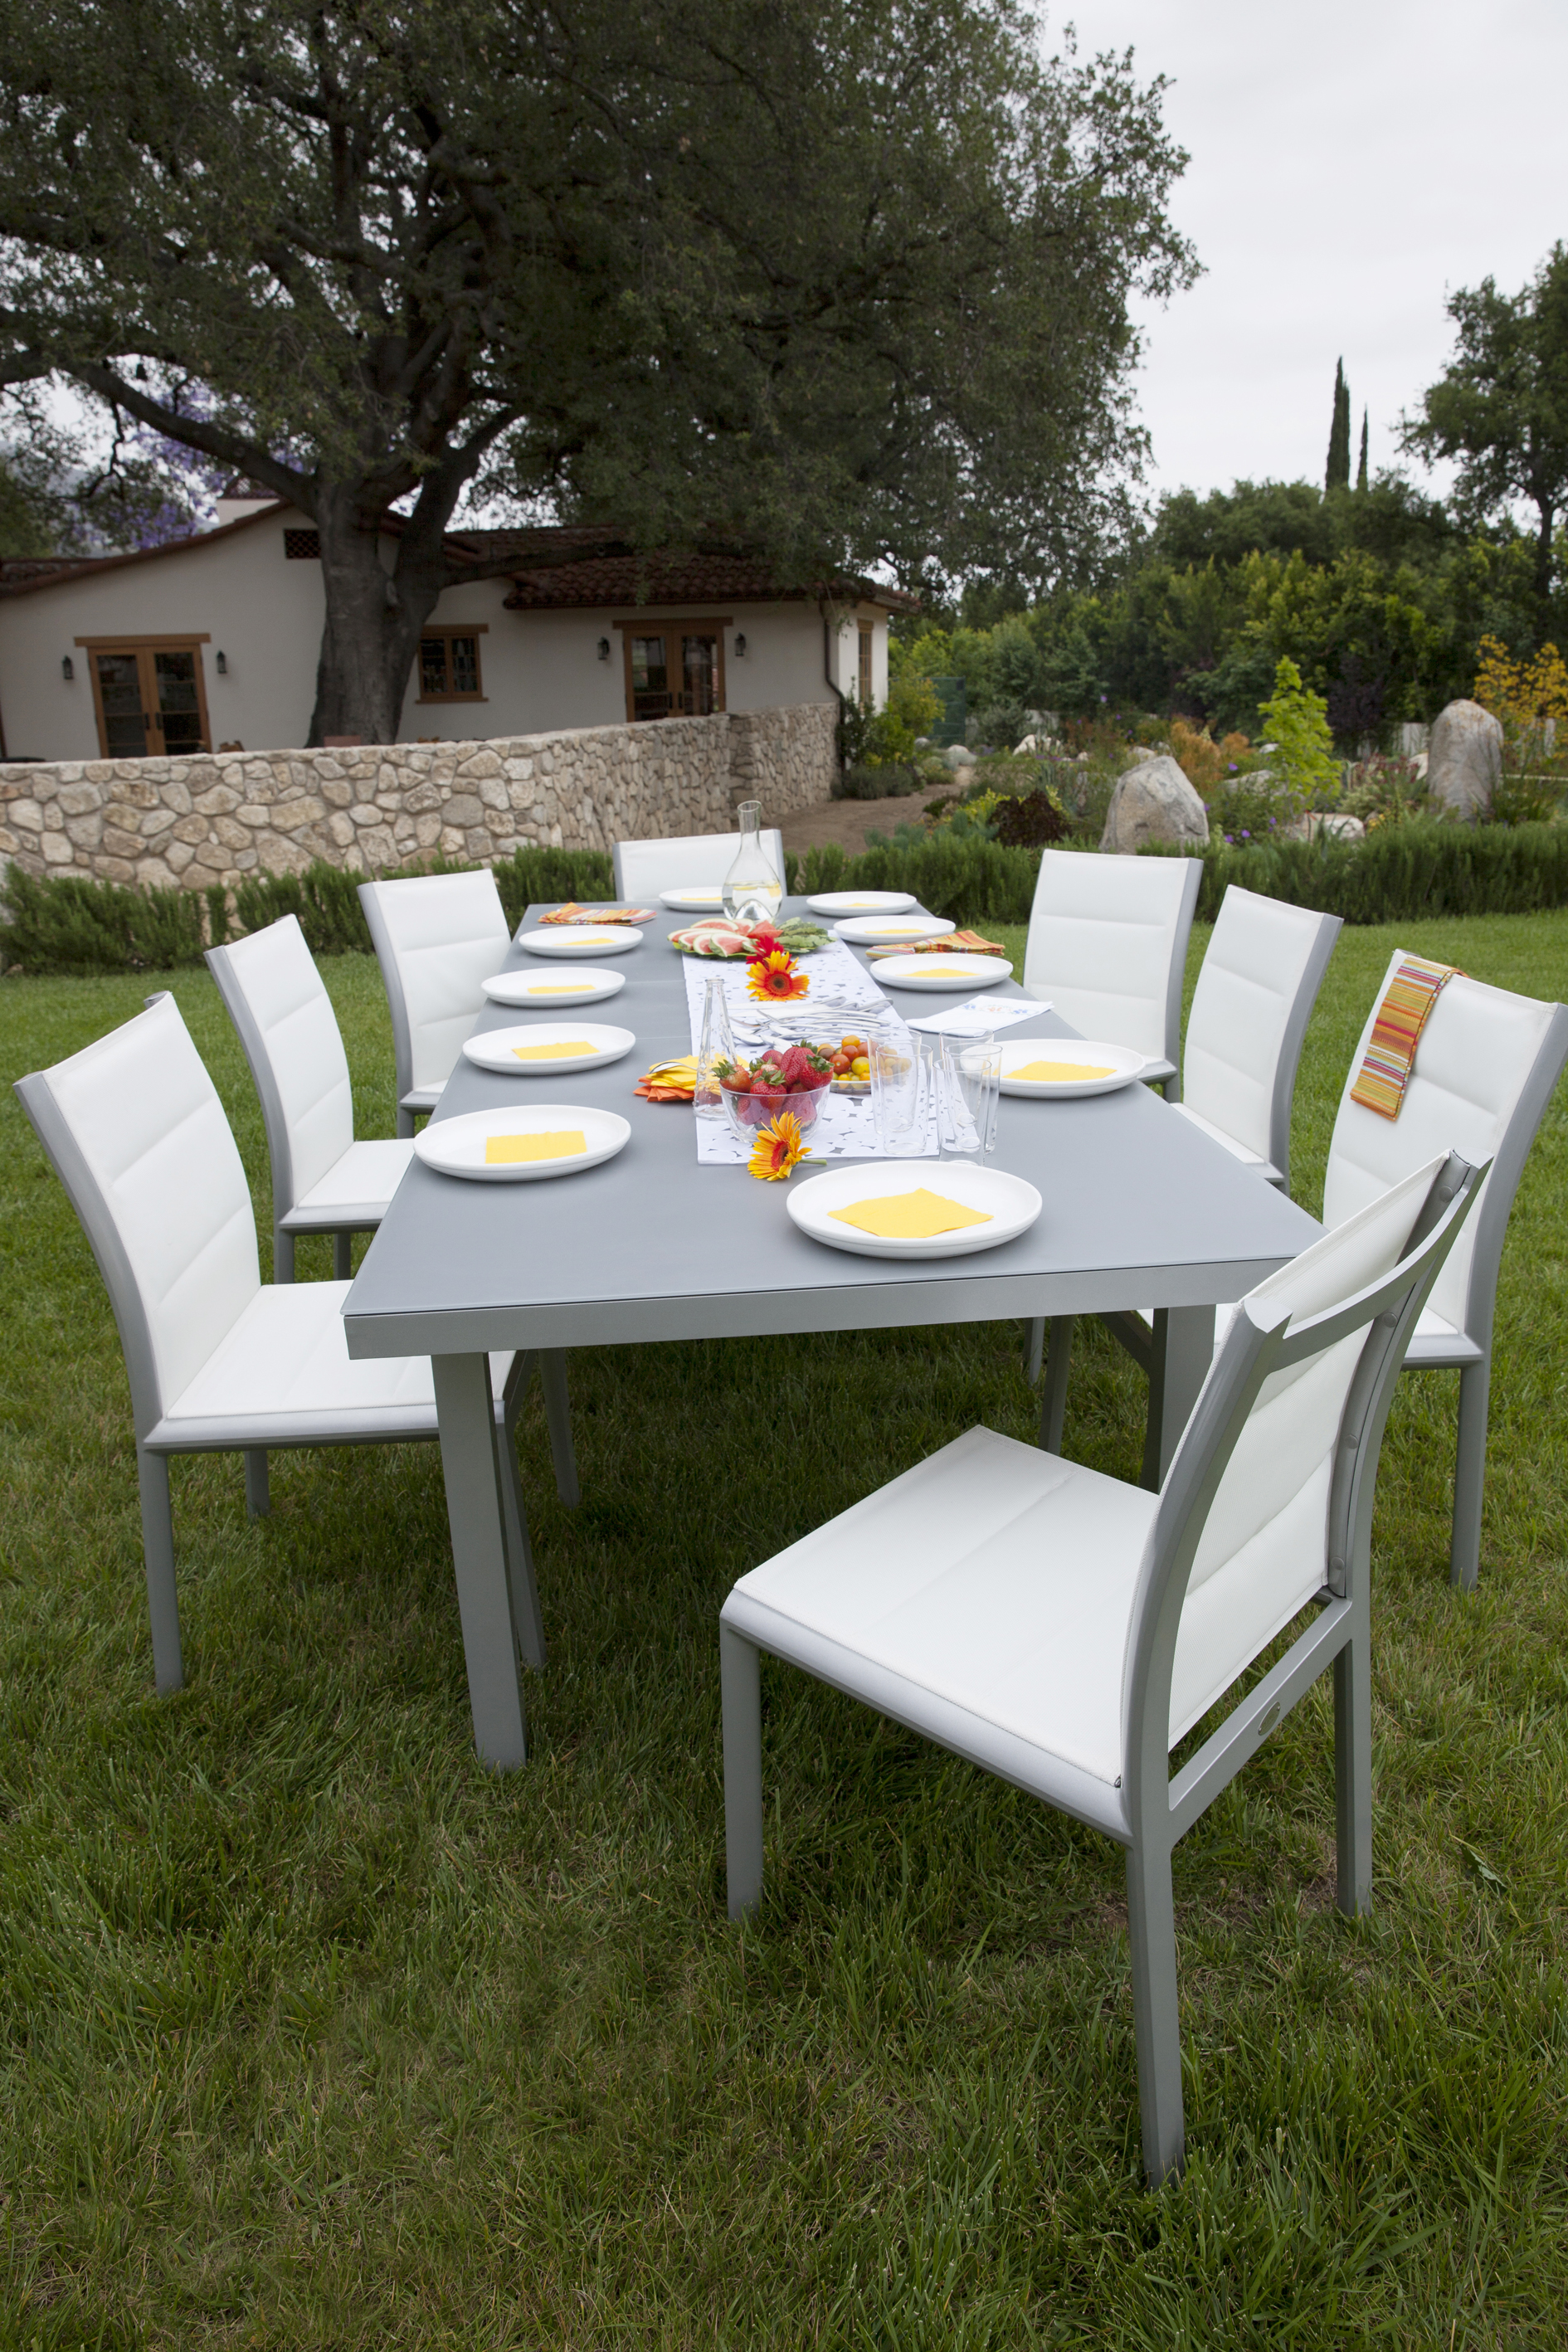 Les Jardins Pop Up Dining Table